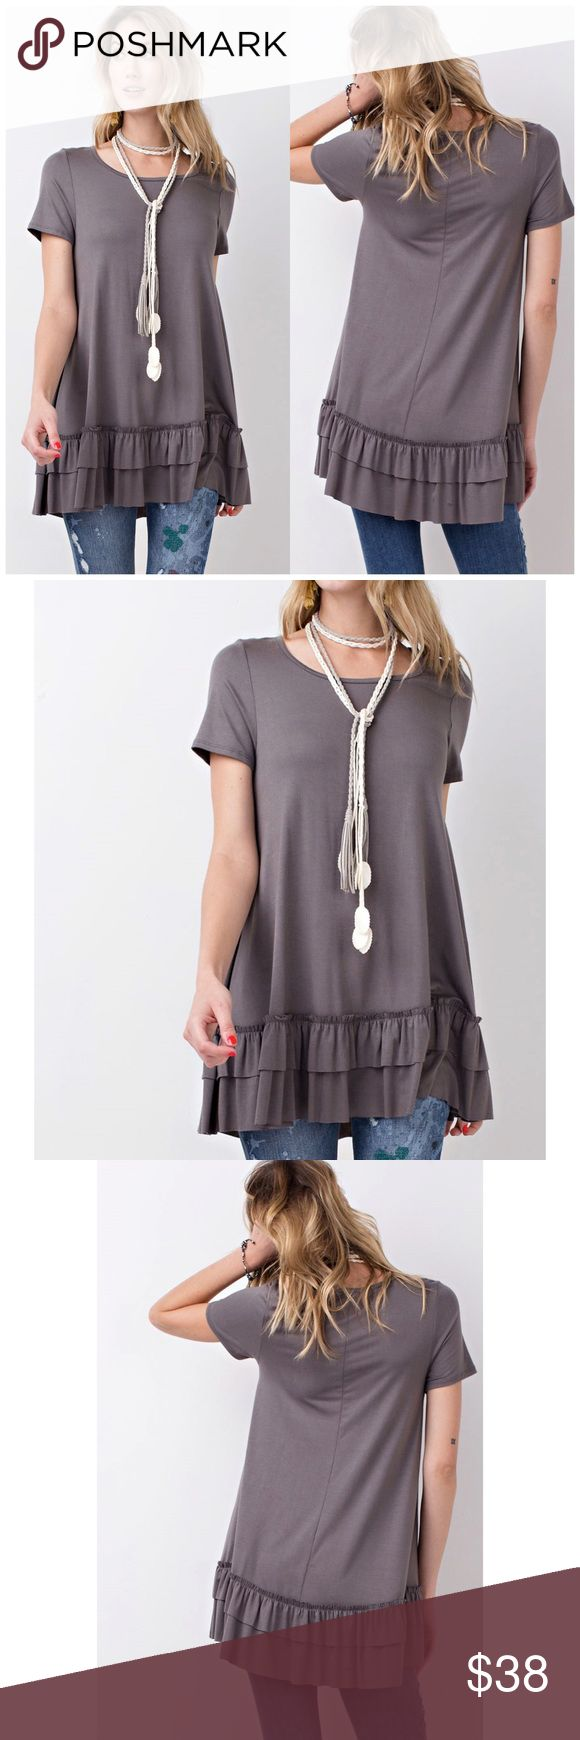 Purple Taupe Double Ruffle Tunic Top Short sleeves round neck. Soft heavy rayon/ spandex material. Loos fit flow tunic with double ruffle. 95% rayon, 5% spandex. Fits true to size   Follow us on Instagram @b_chic_boutique For awesome perks! B Chic Boutique Tops Tunics